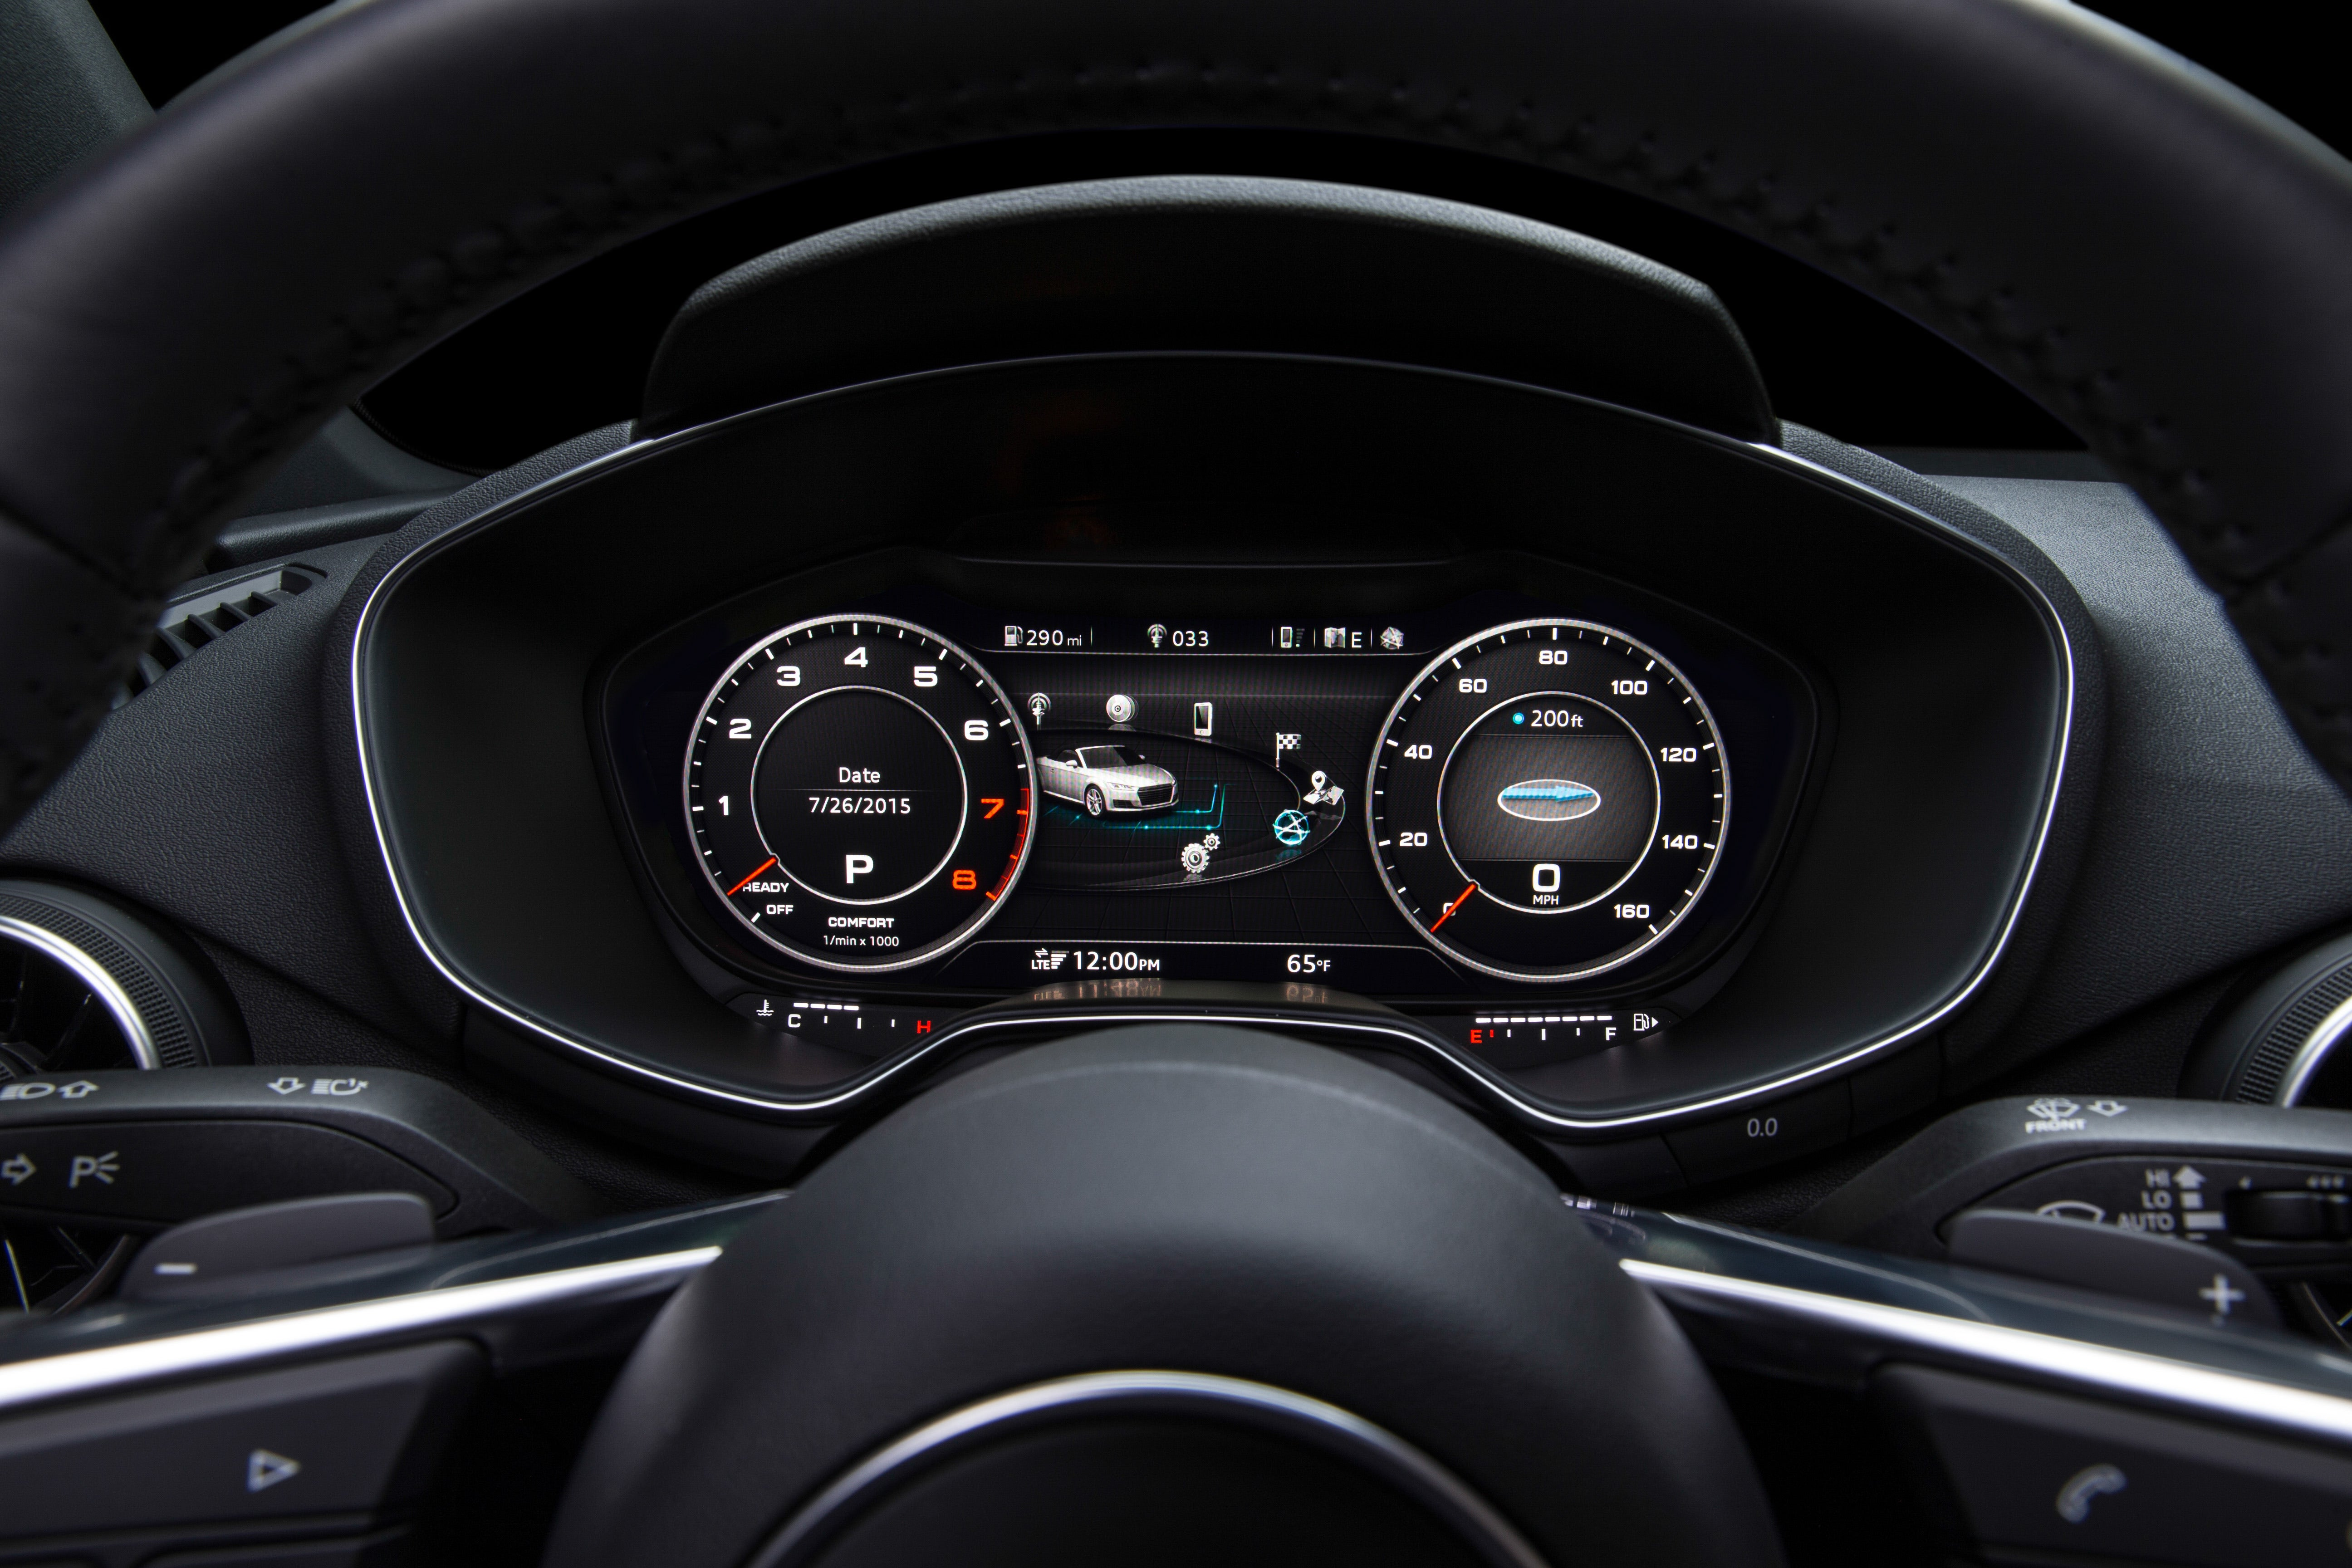 Nvidia Turbocharges The 2016 Audi Tts Virtual Cockpit With Gaming Car Tachometer Circuit Schematic Diagram Speed 60fps Graphics Pcworld